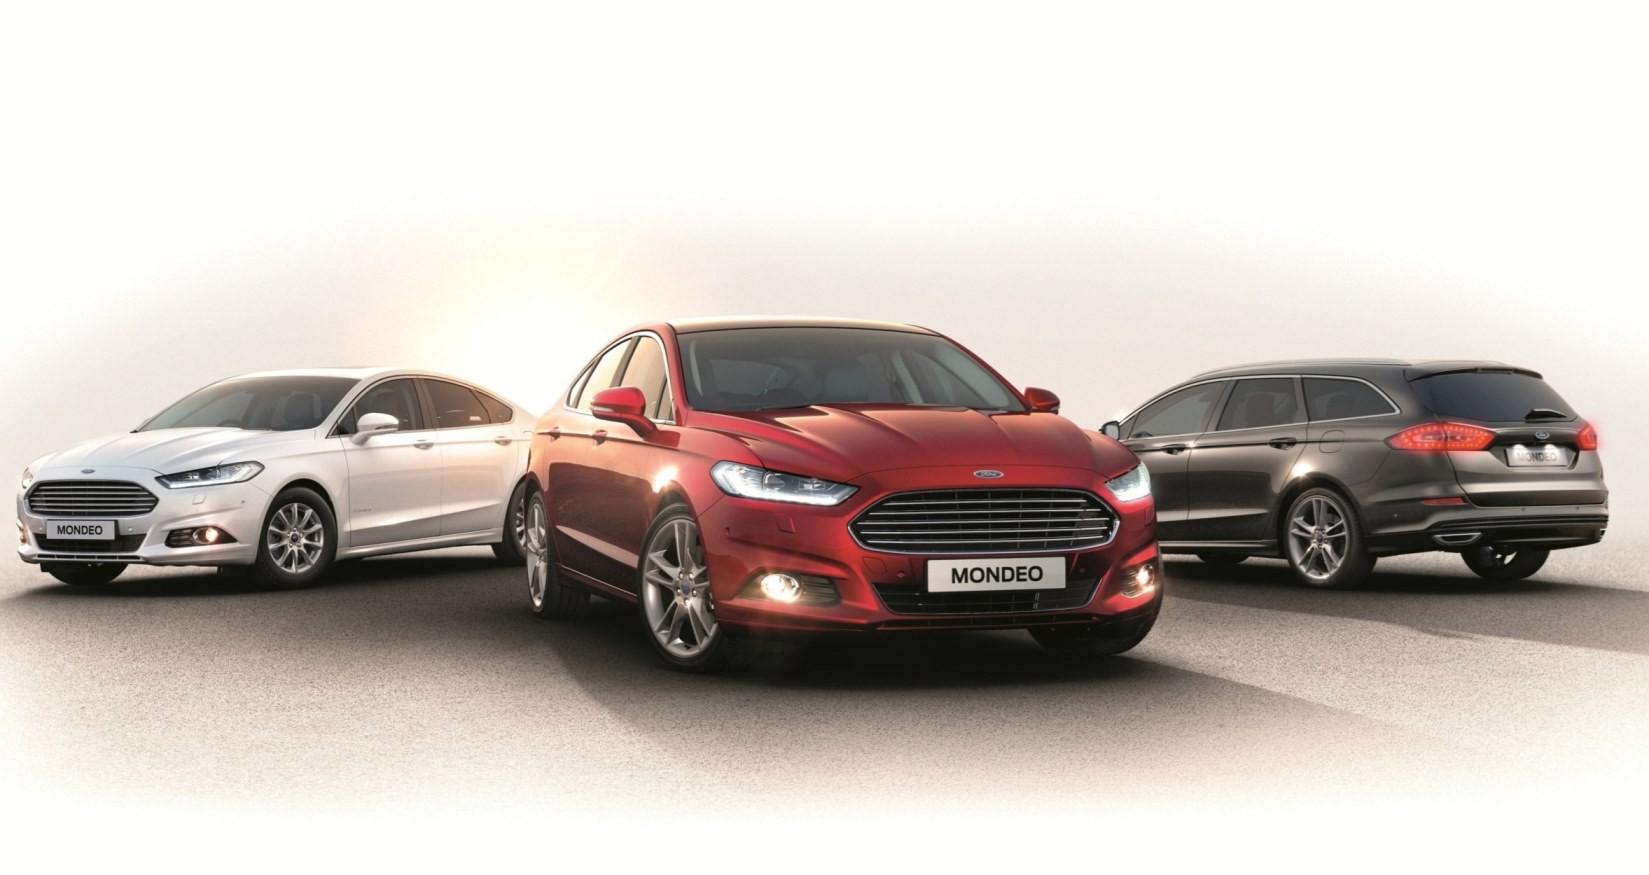 2015 ford mondeo brings new led headlights redesigned steering and suspension. Black Bedroom Furniture Sets. Home Design Ideas